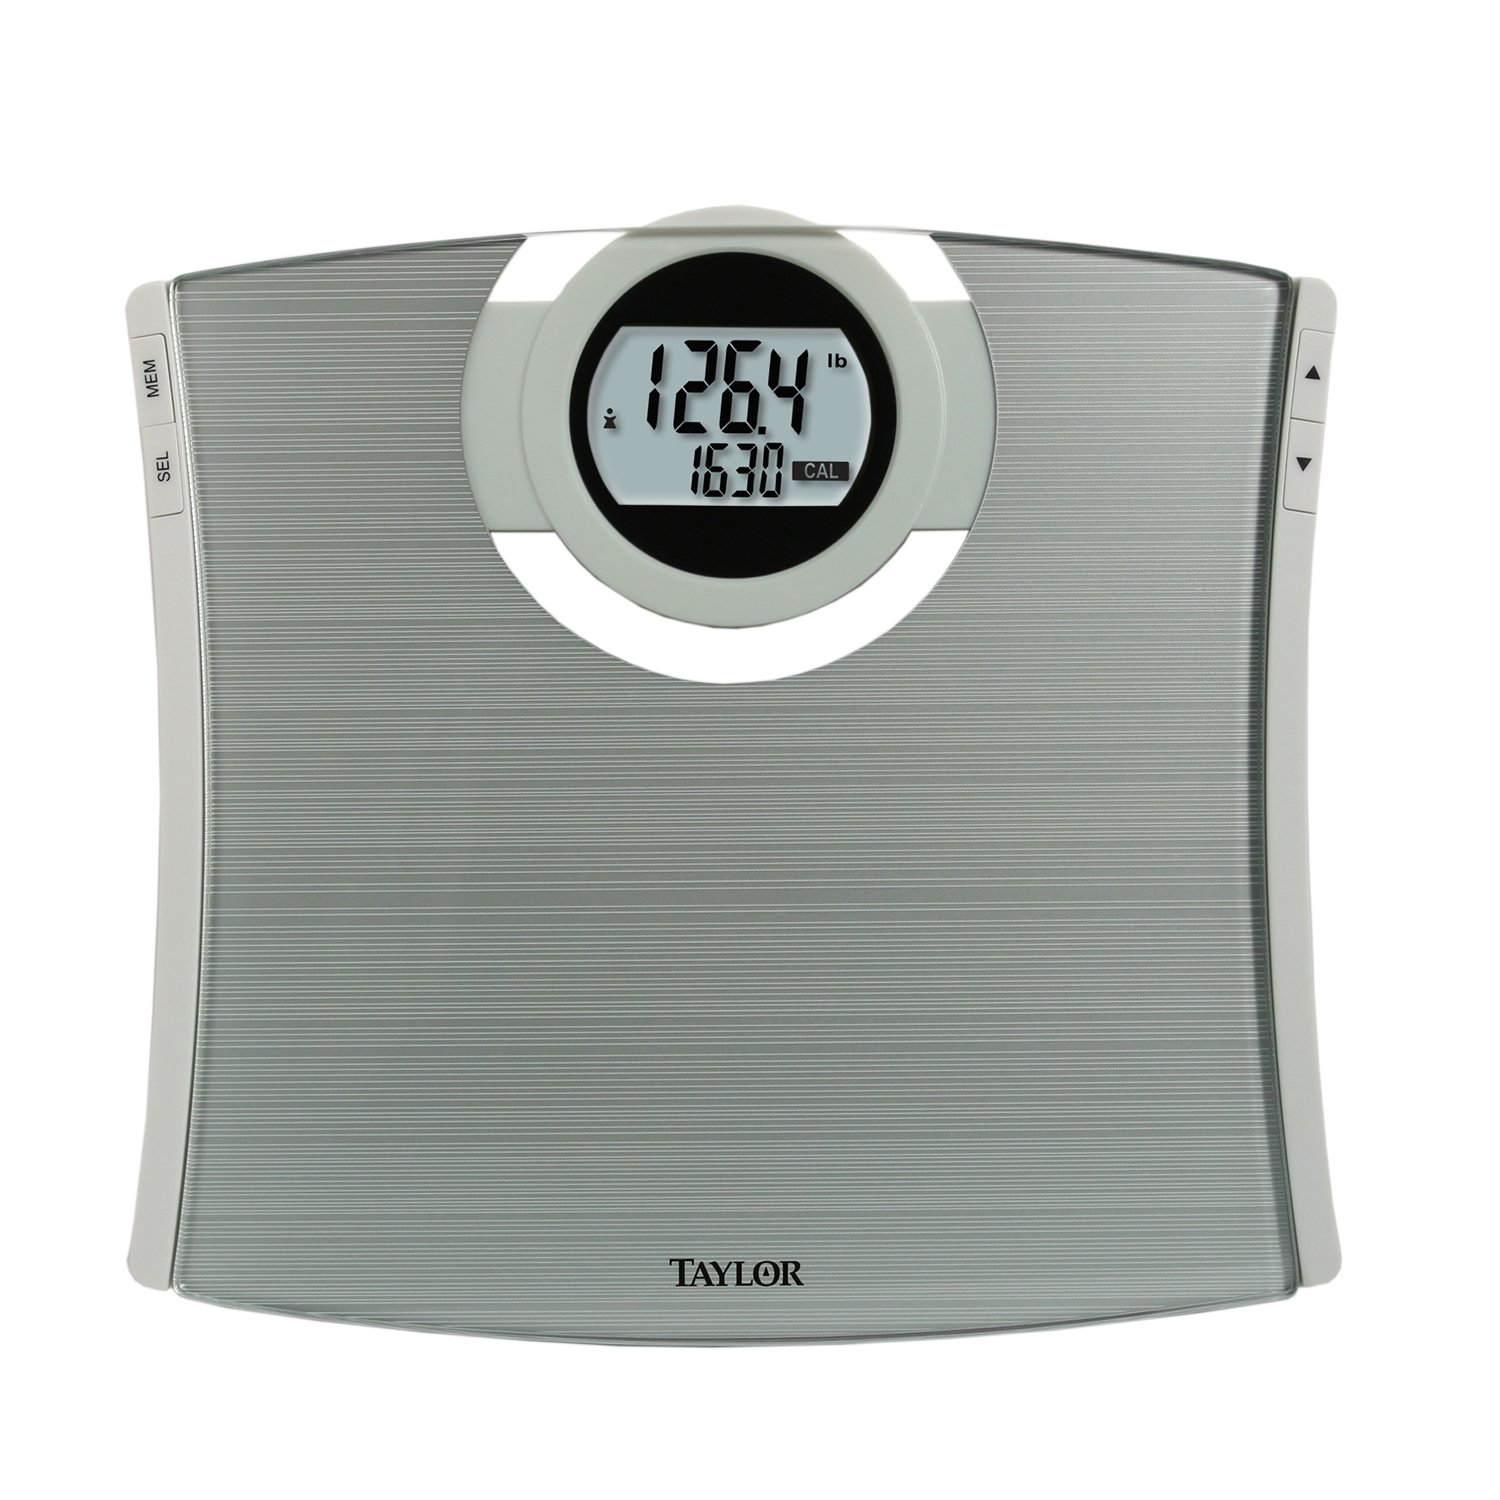 steel bathroom scales scale analysis taylor body stainless product